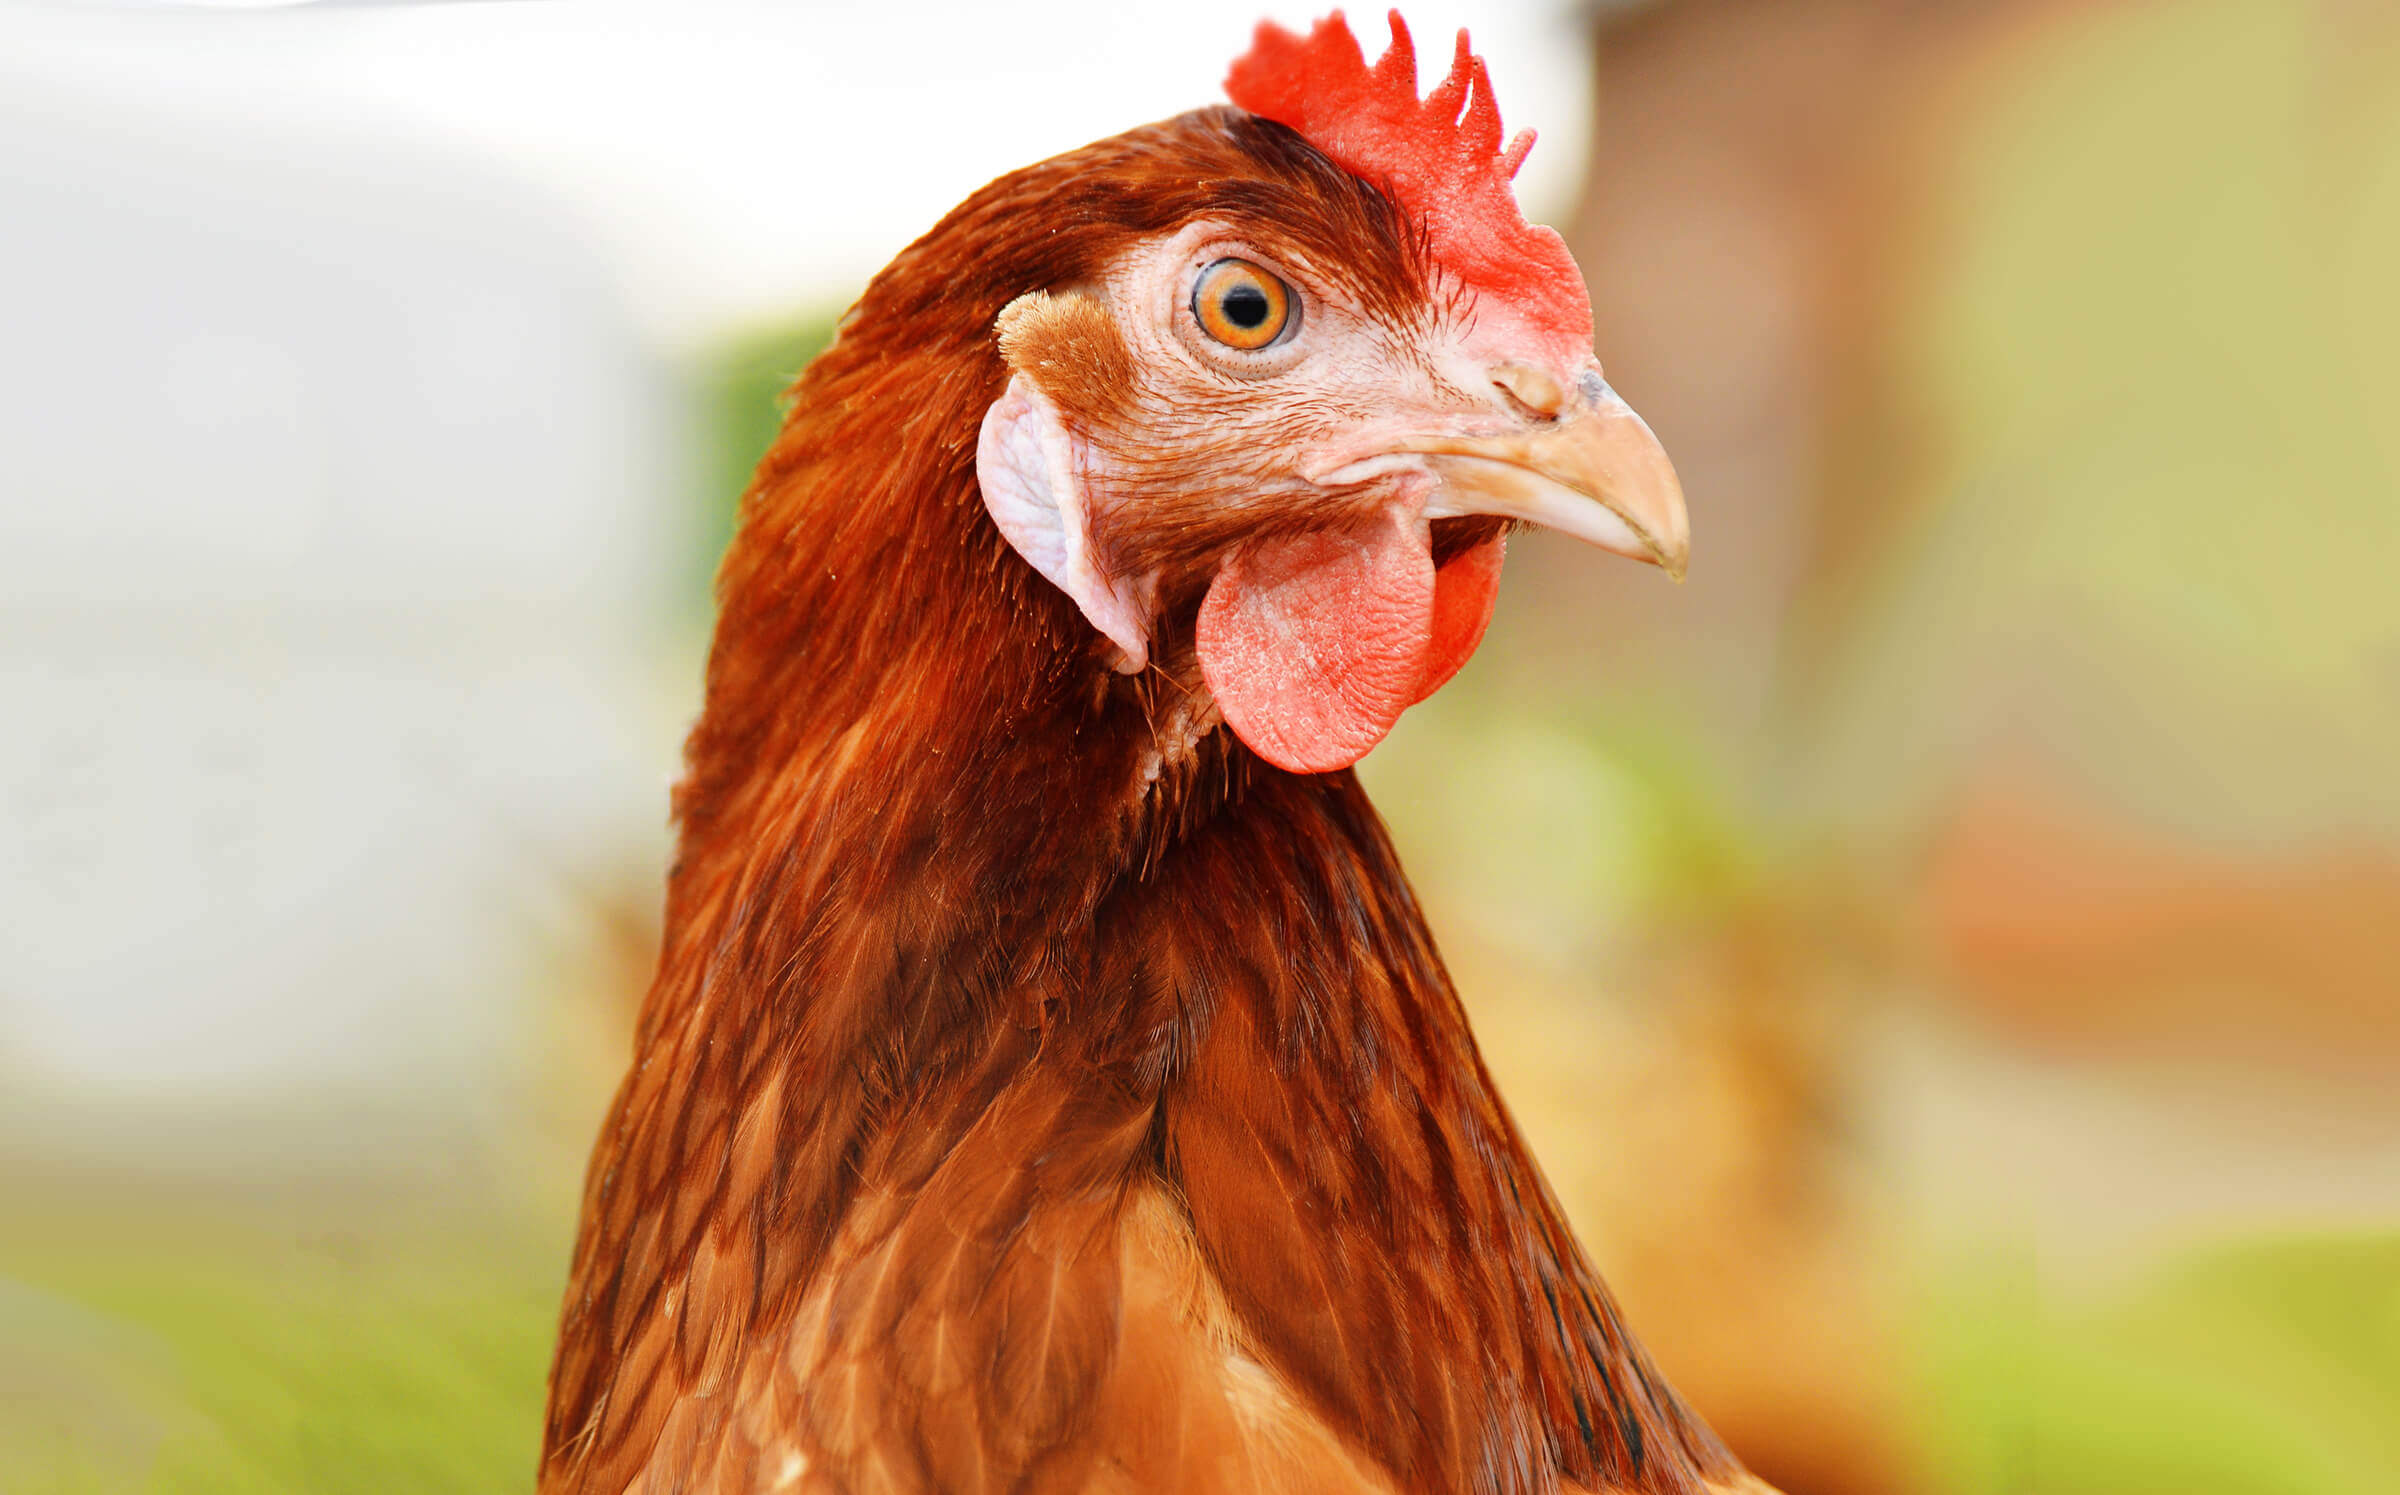 image of brown chicken